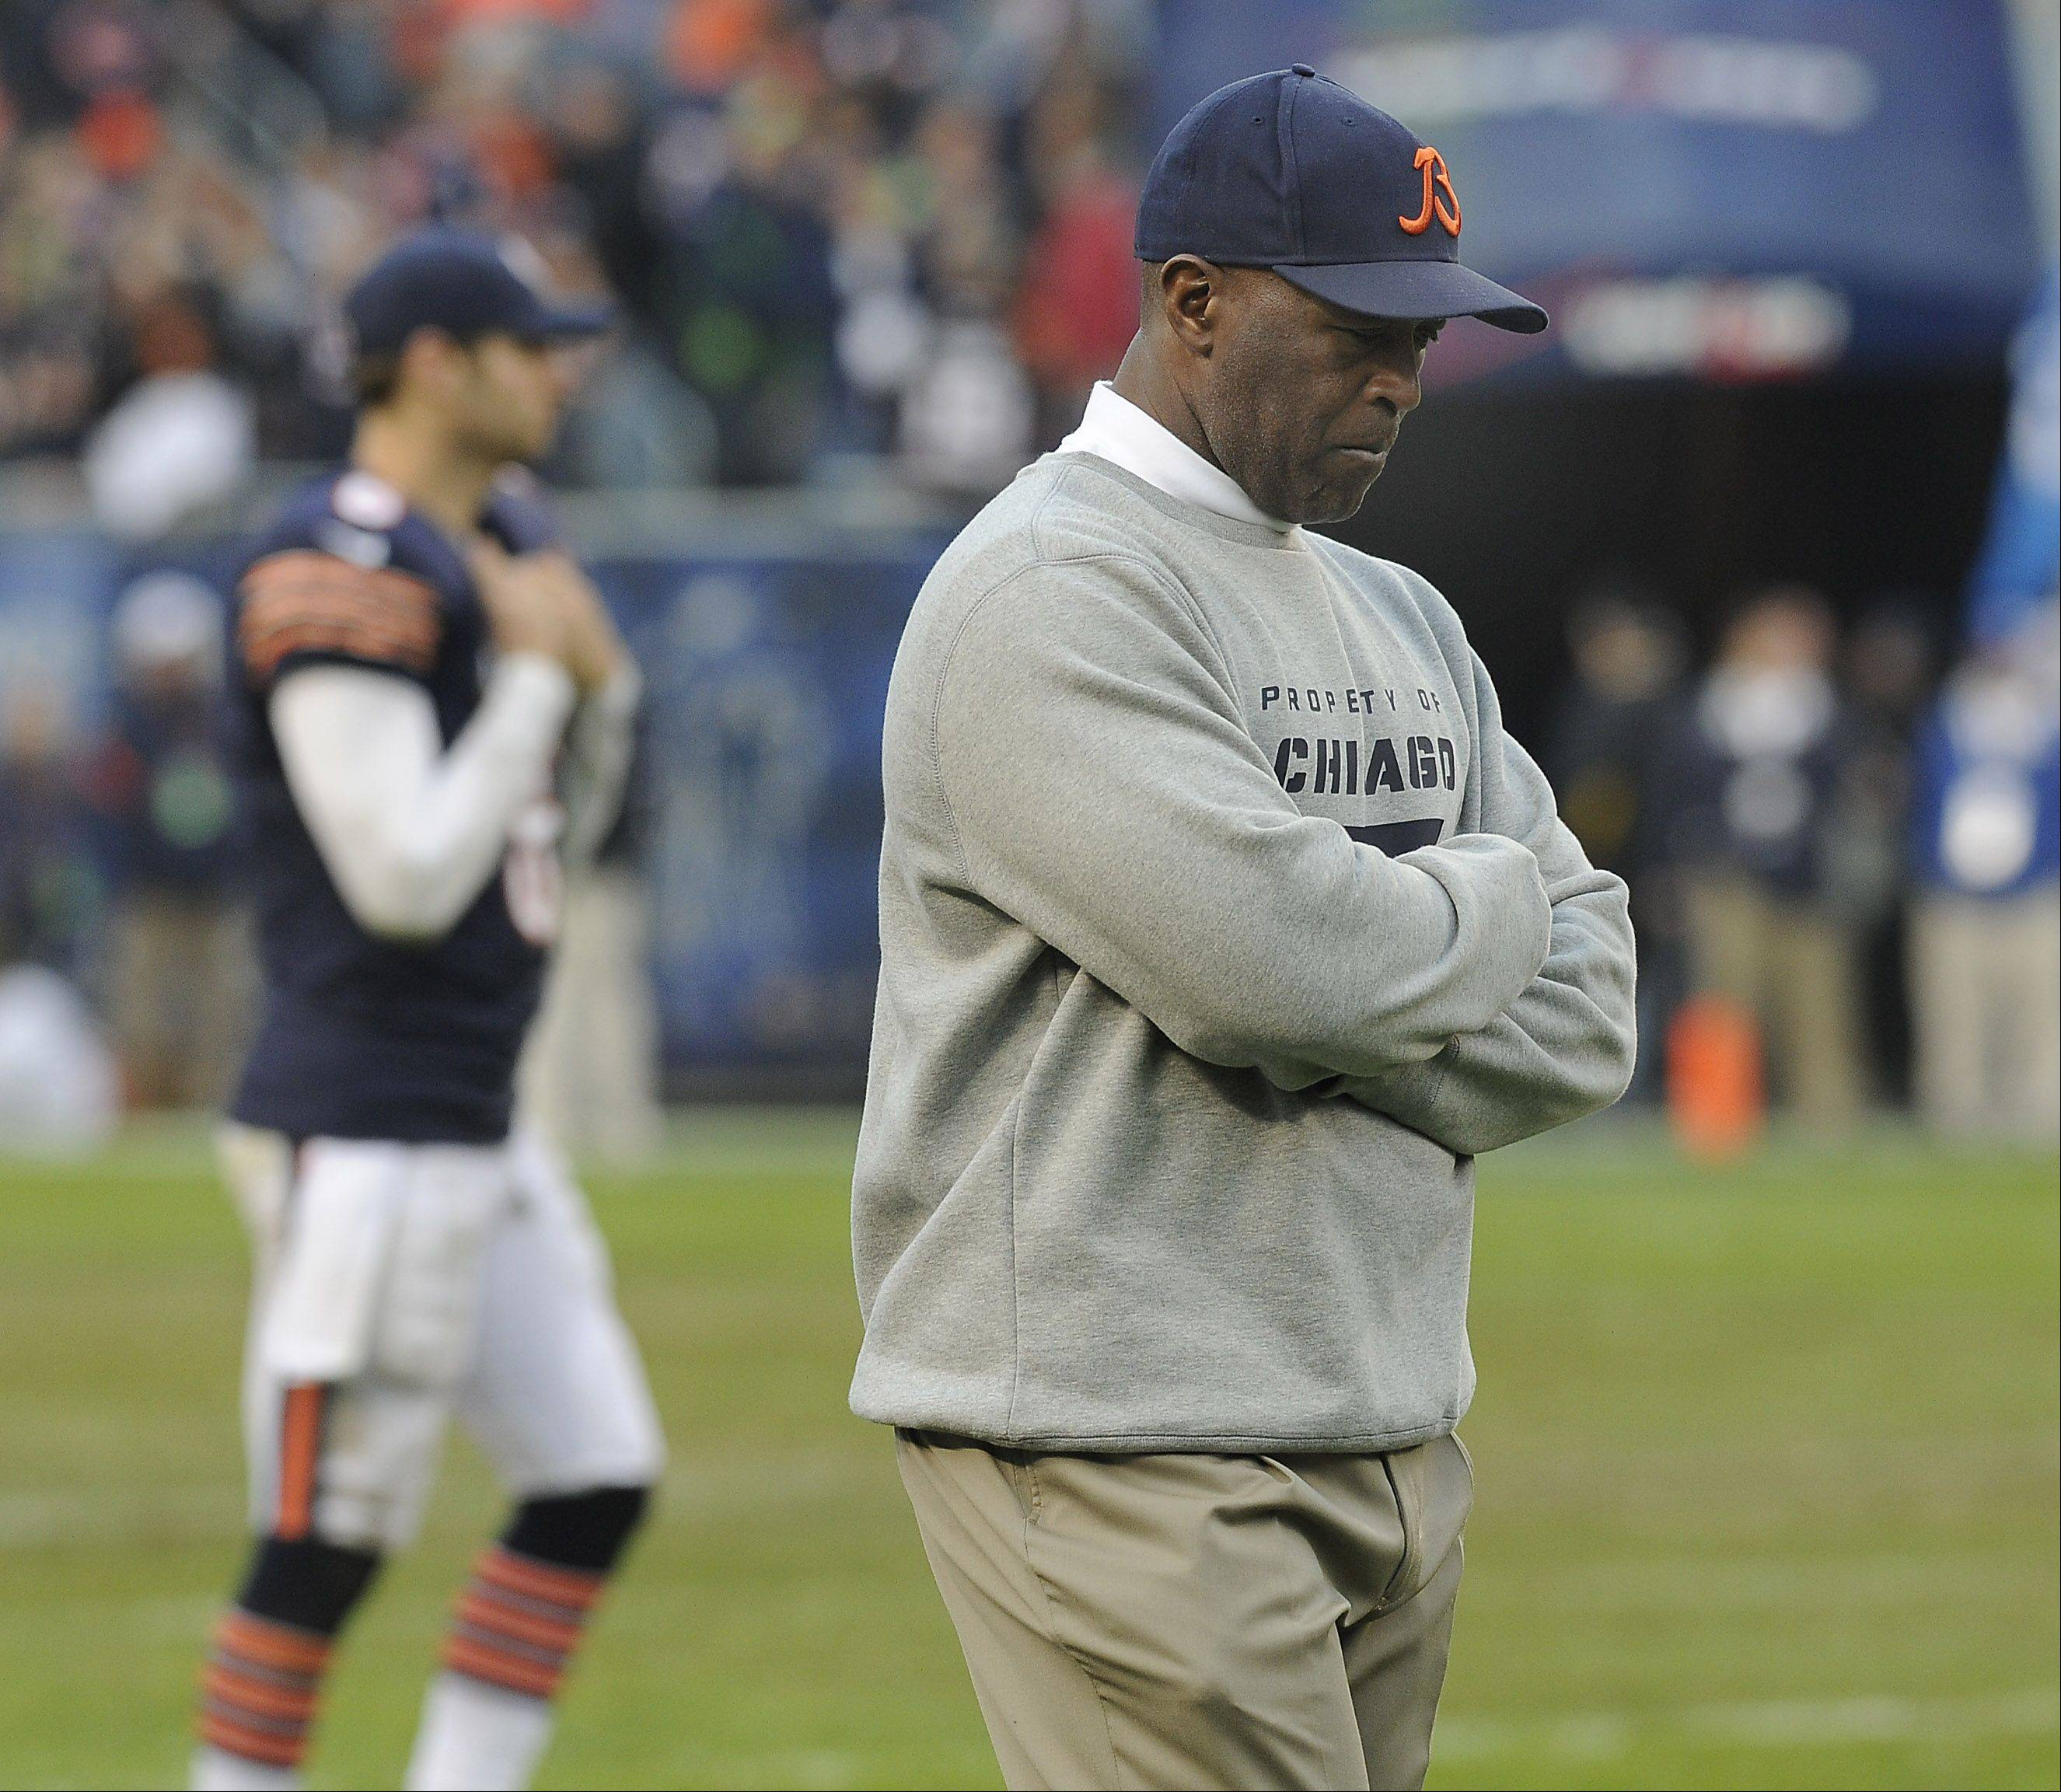 Bears coach Lovie Smith looks down at the end of the game as quarterback Jay Cutler heads off the field in the 23-17 loss the the Seahawks at Soldier Field in Chicago.